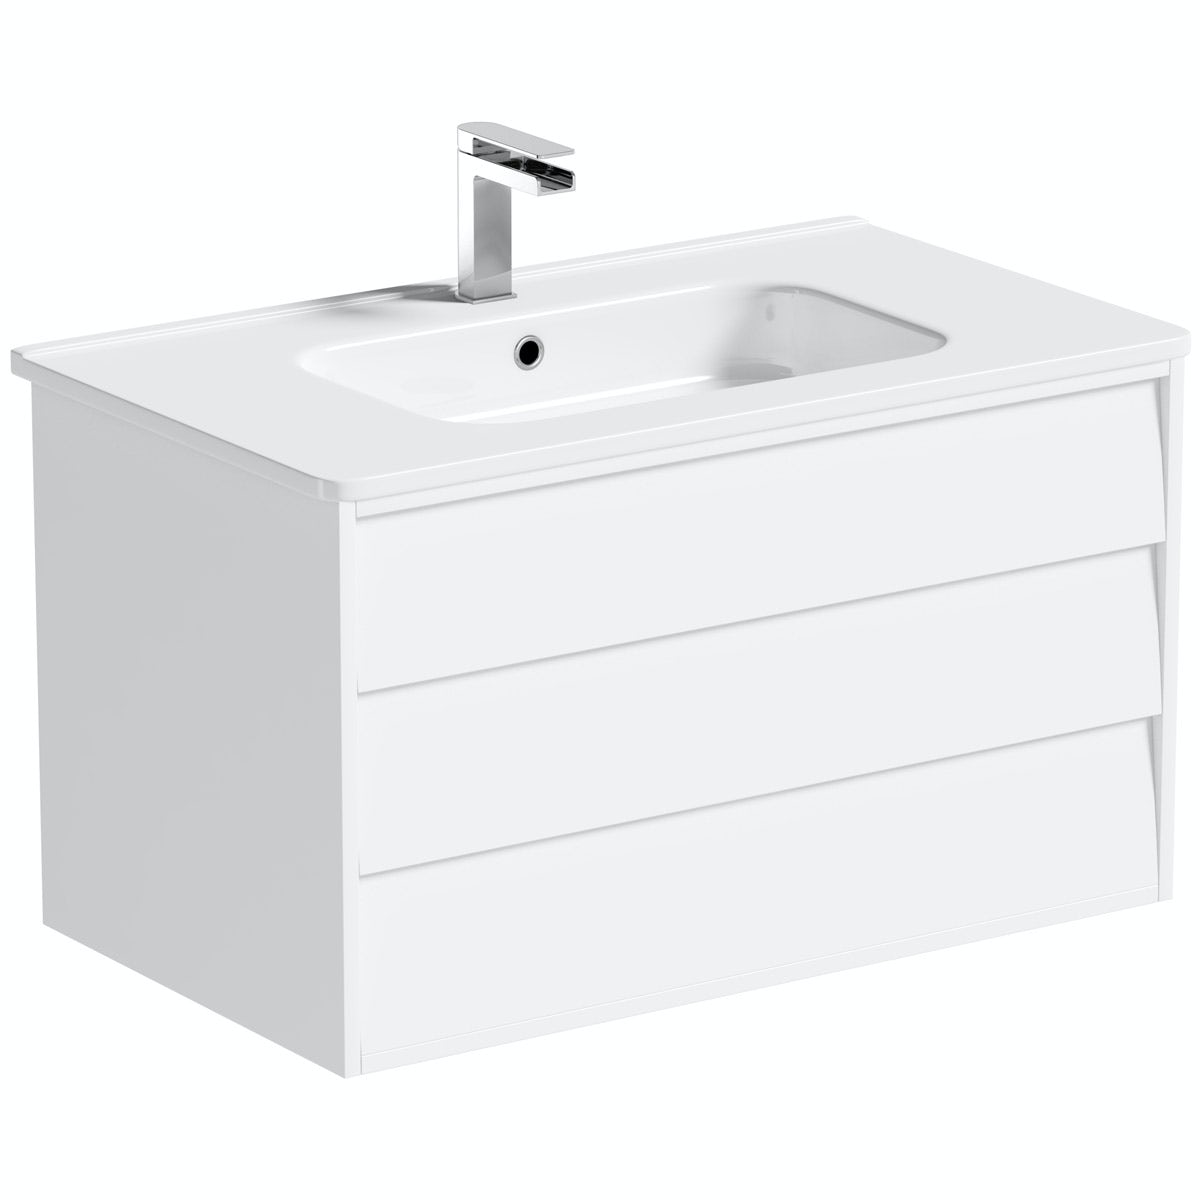 Mode Cooper white wall hung vanity unit and basin 800mm